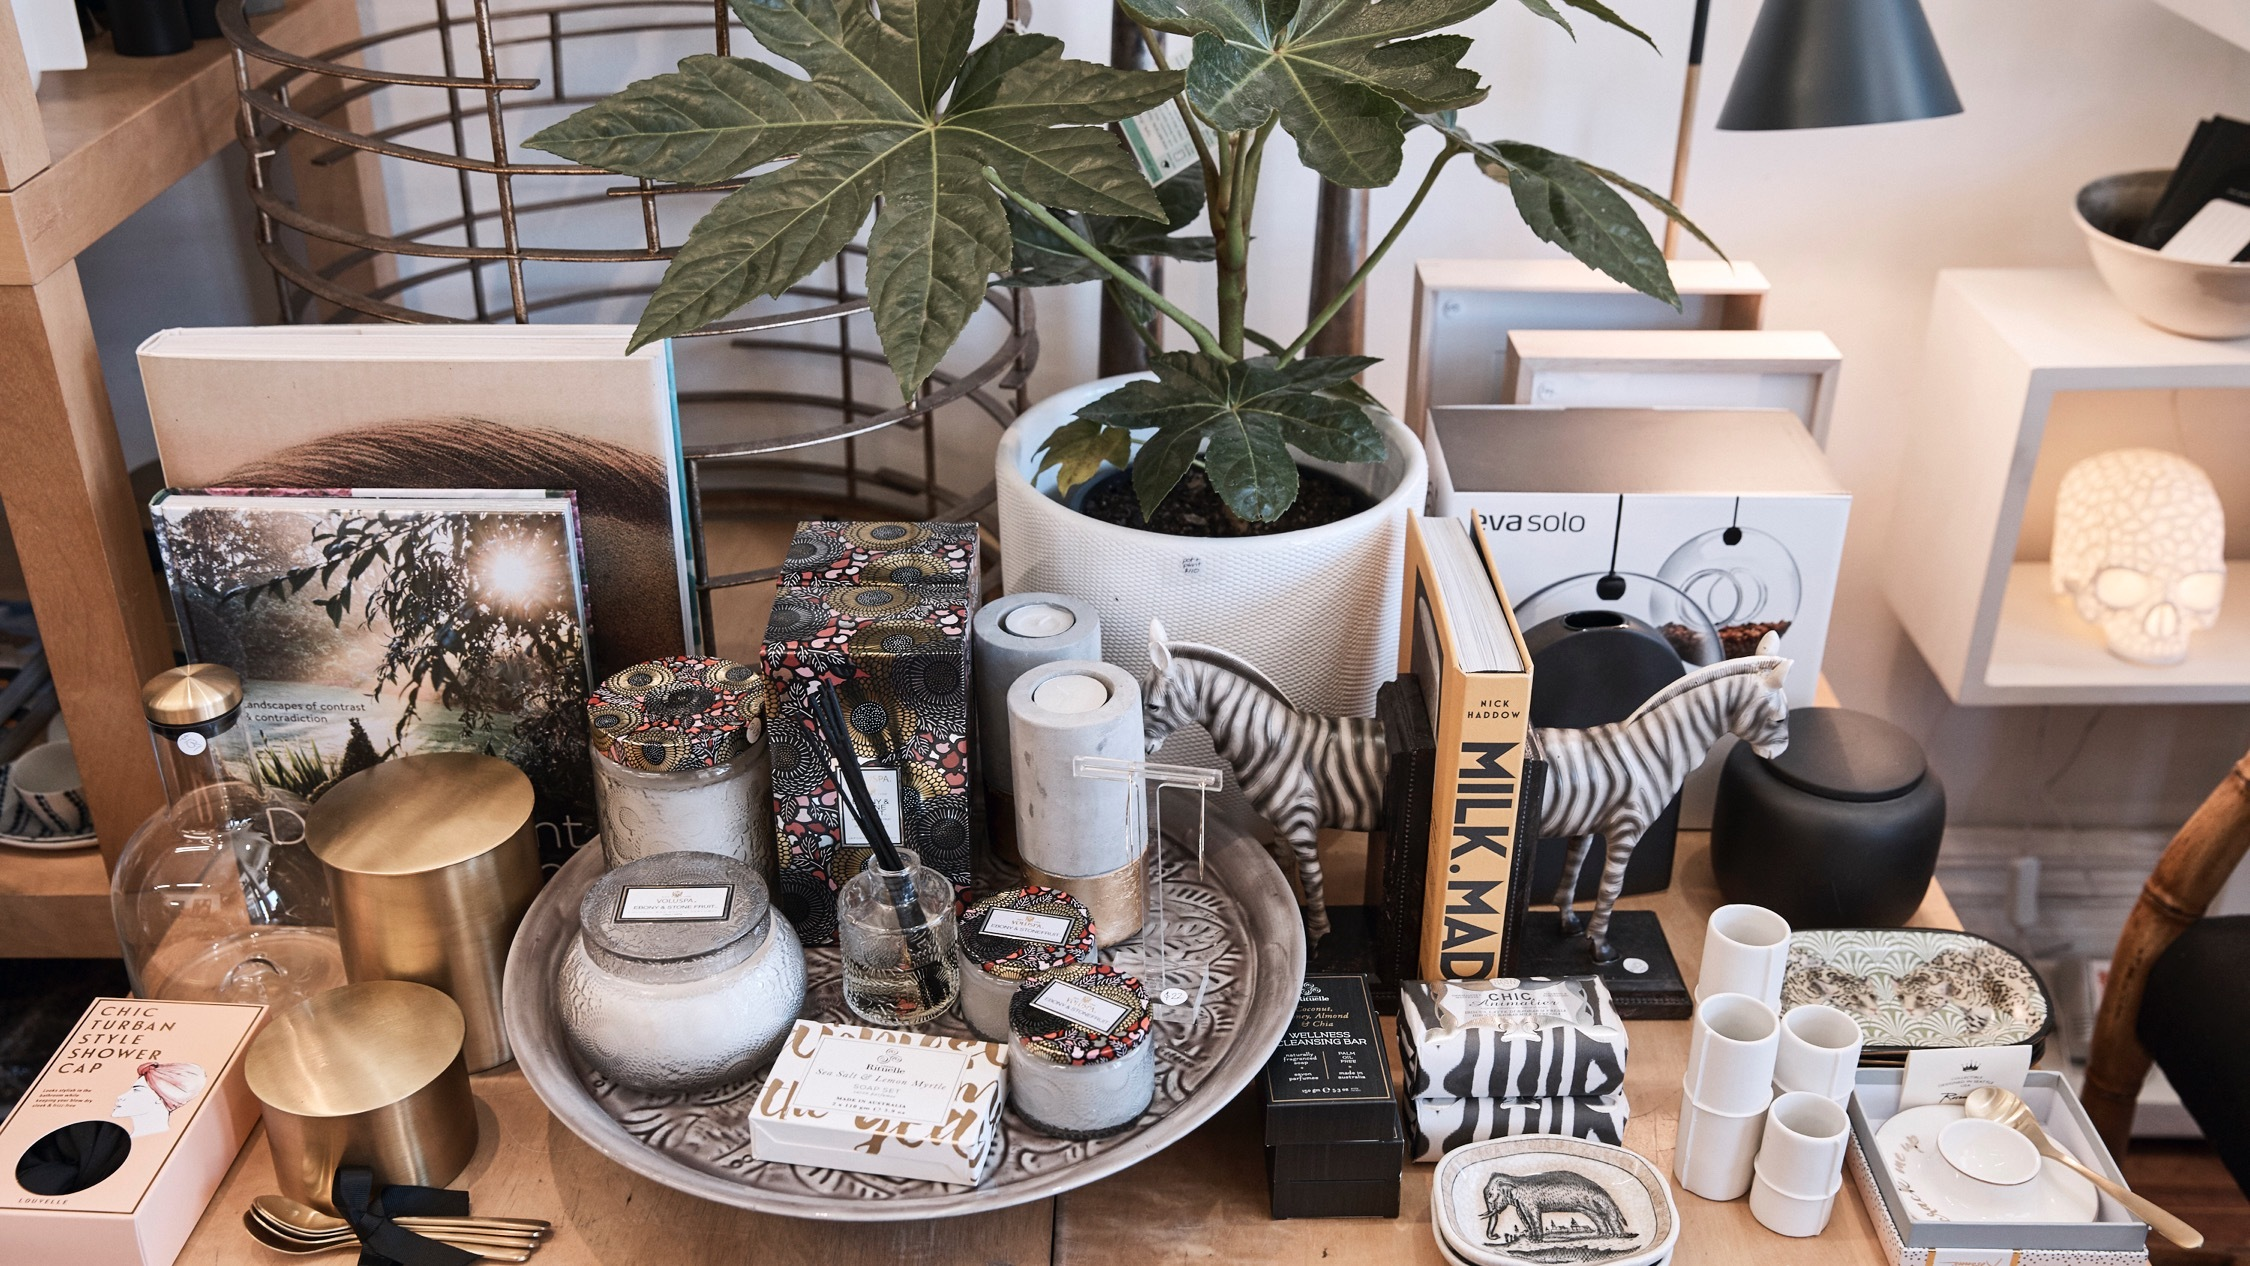 Products at Urban Oaisis